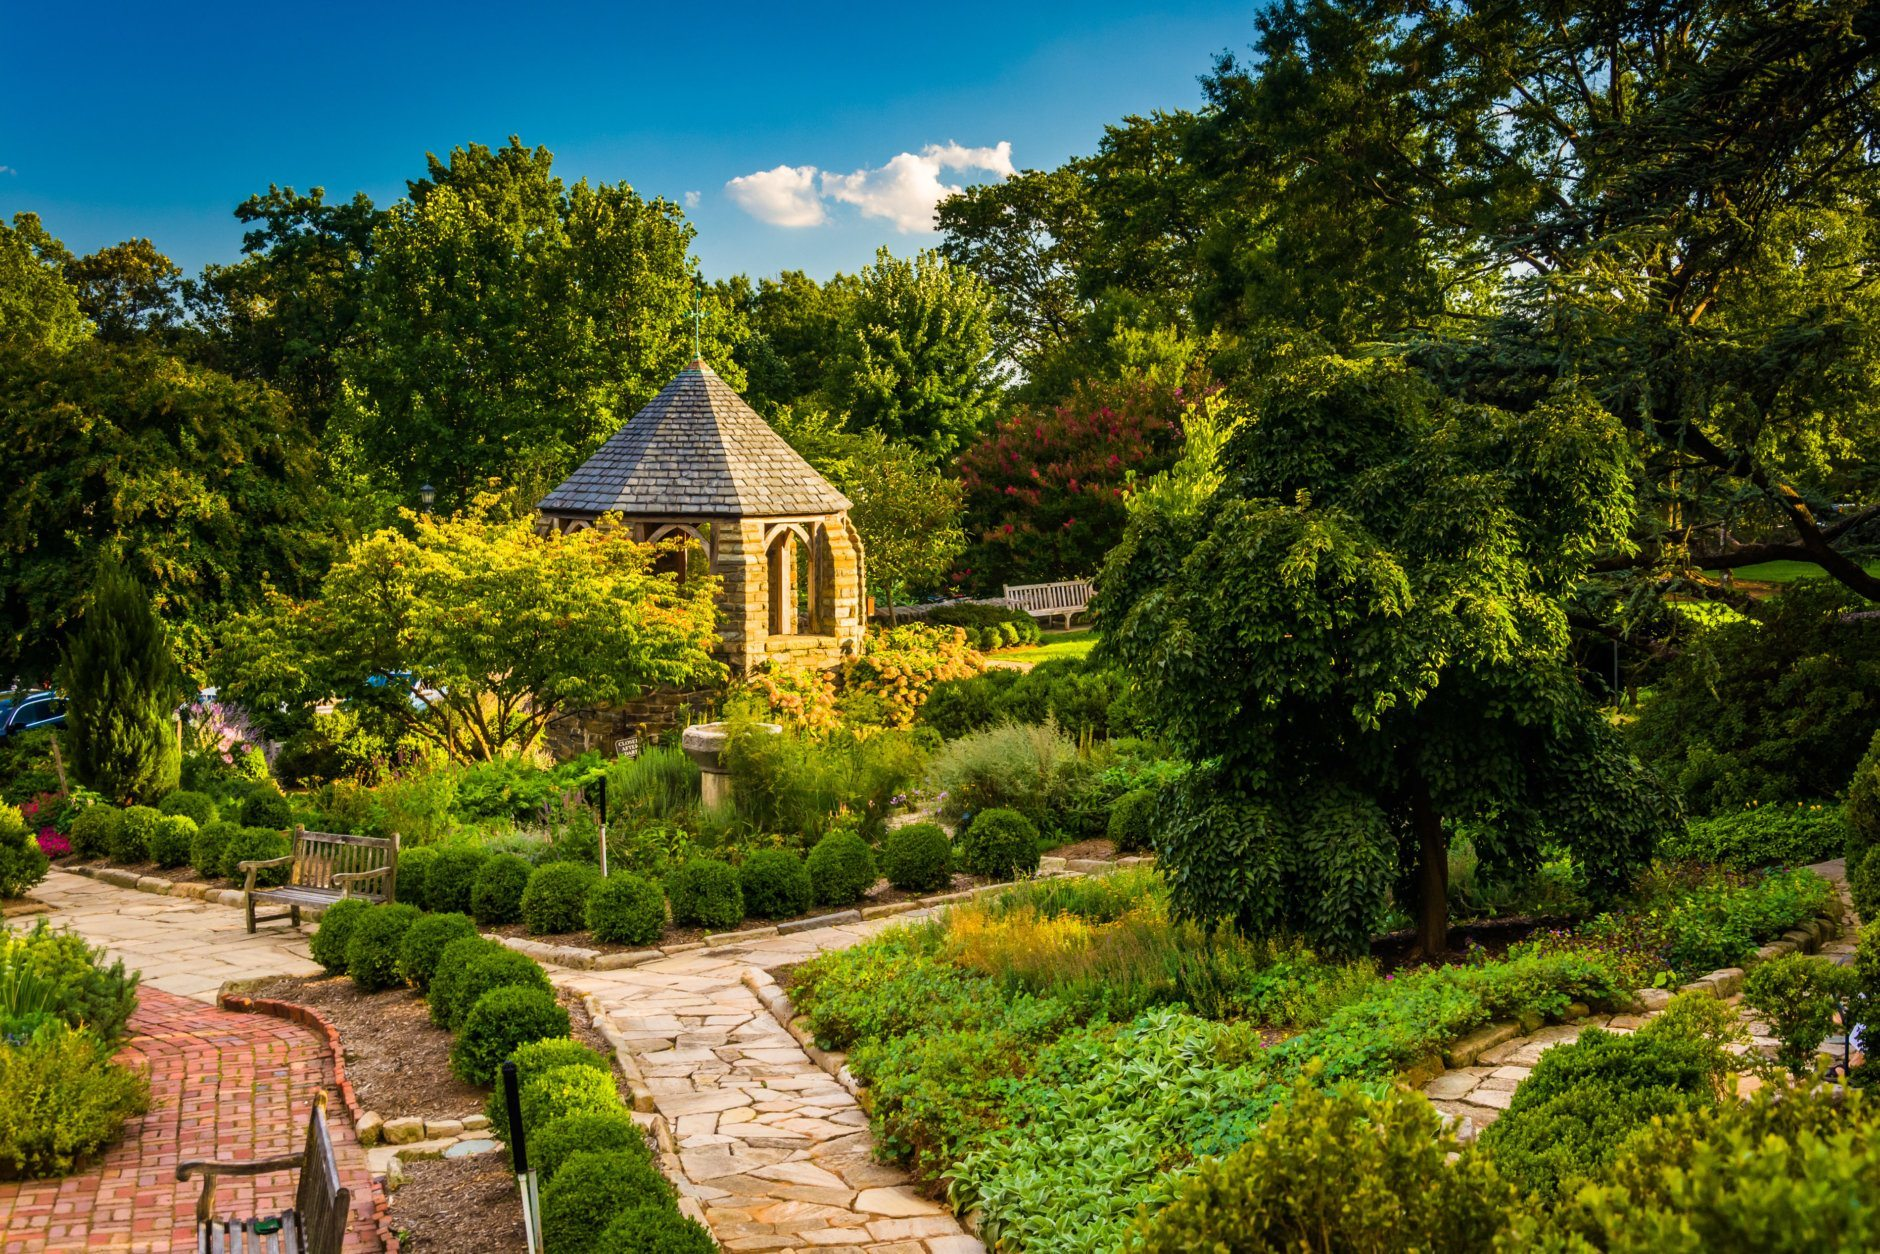 View of the Bishop's Garden at the Washington National Cathedral in Washington, DC. There will be a garden tour for Earth Day 2019. (Getty Images/iStockphoto)